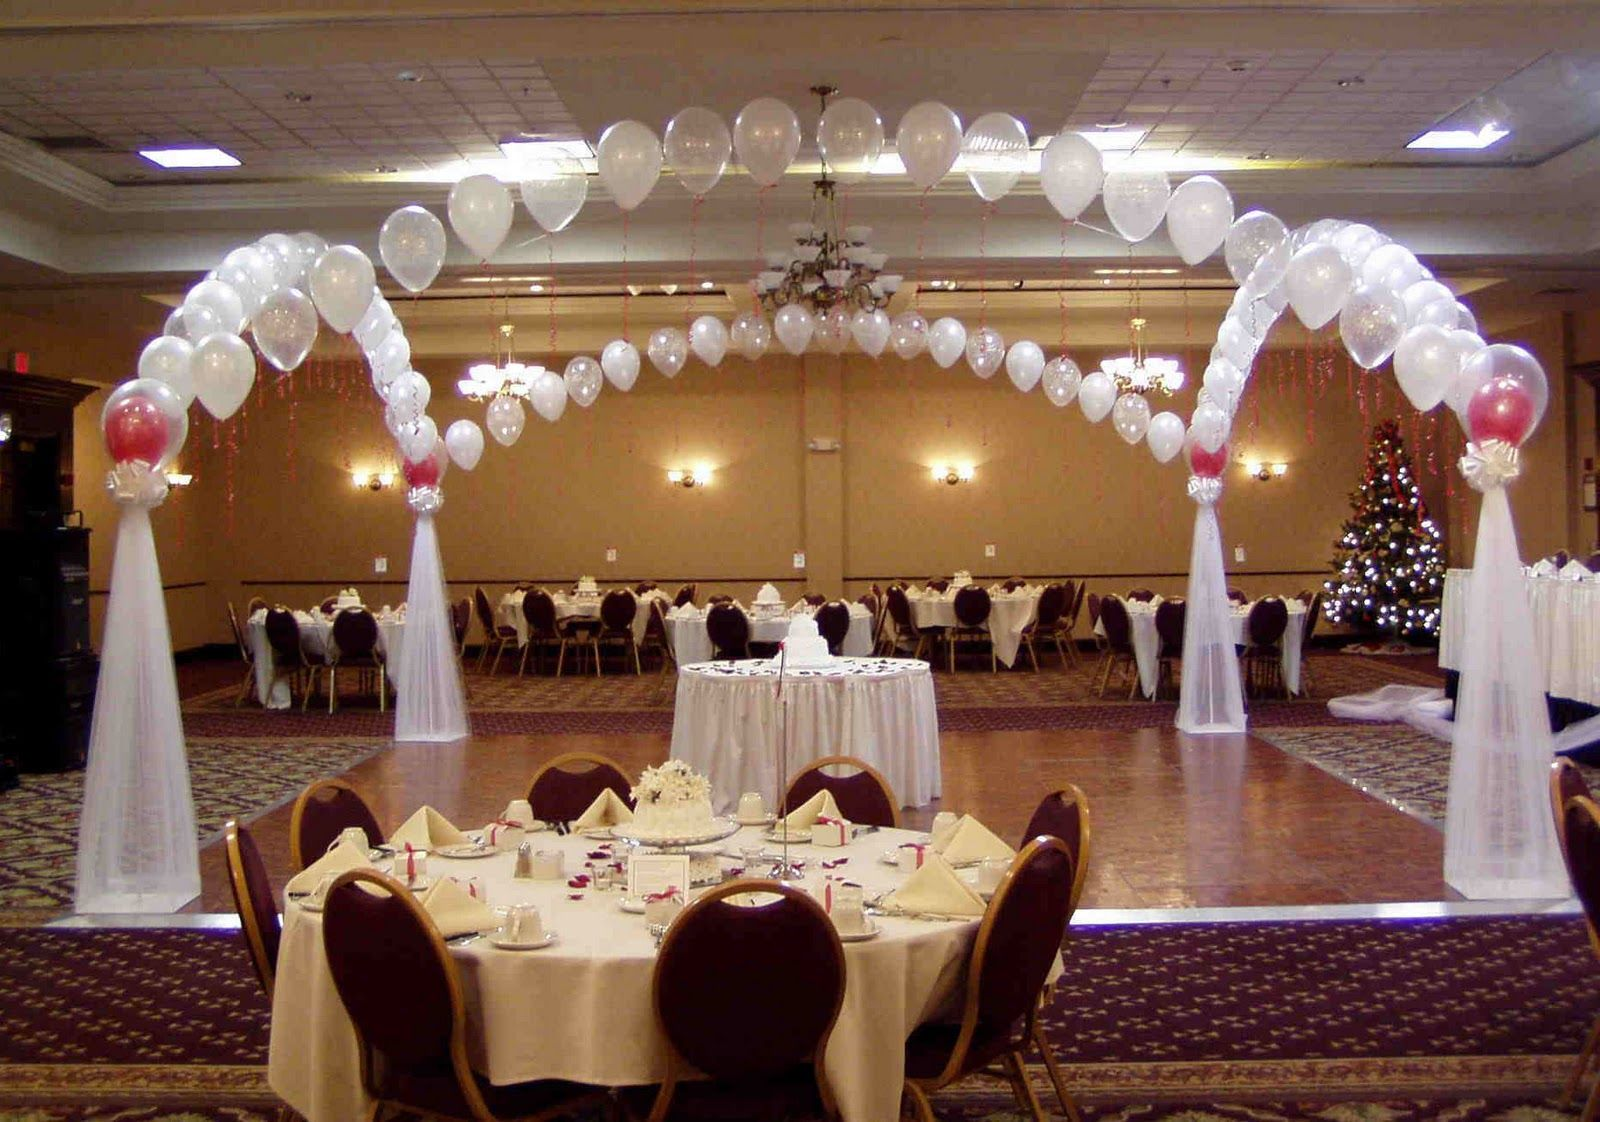 Venue decorations one great way to decorate the venue with wedding venue decorations one great way to decorate the venue with wedding decorations cheap without spending much is to have an open air wedding junglespirit Image collections